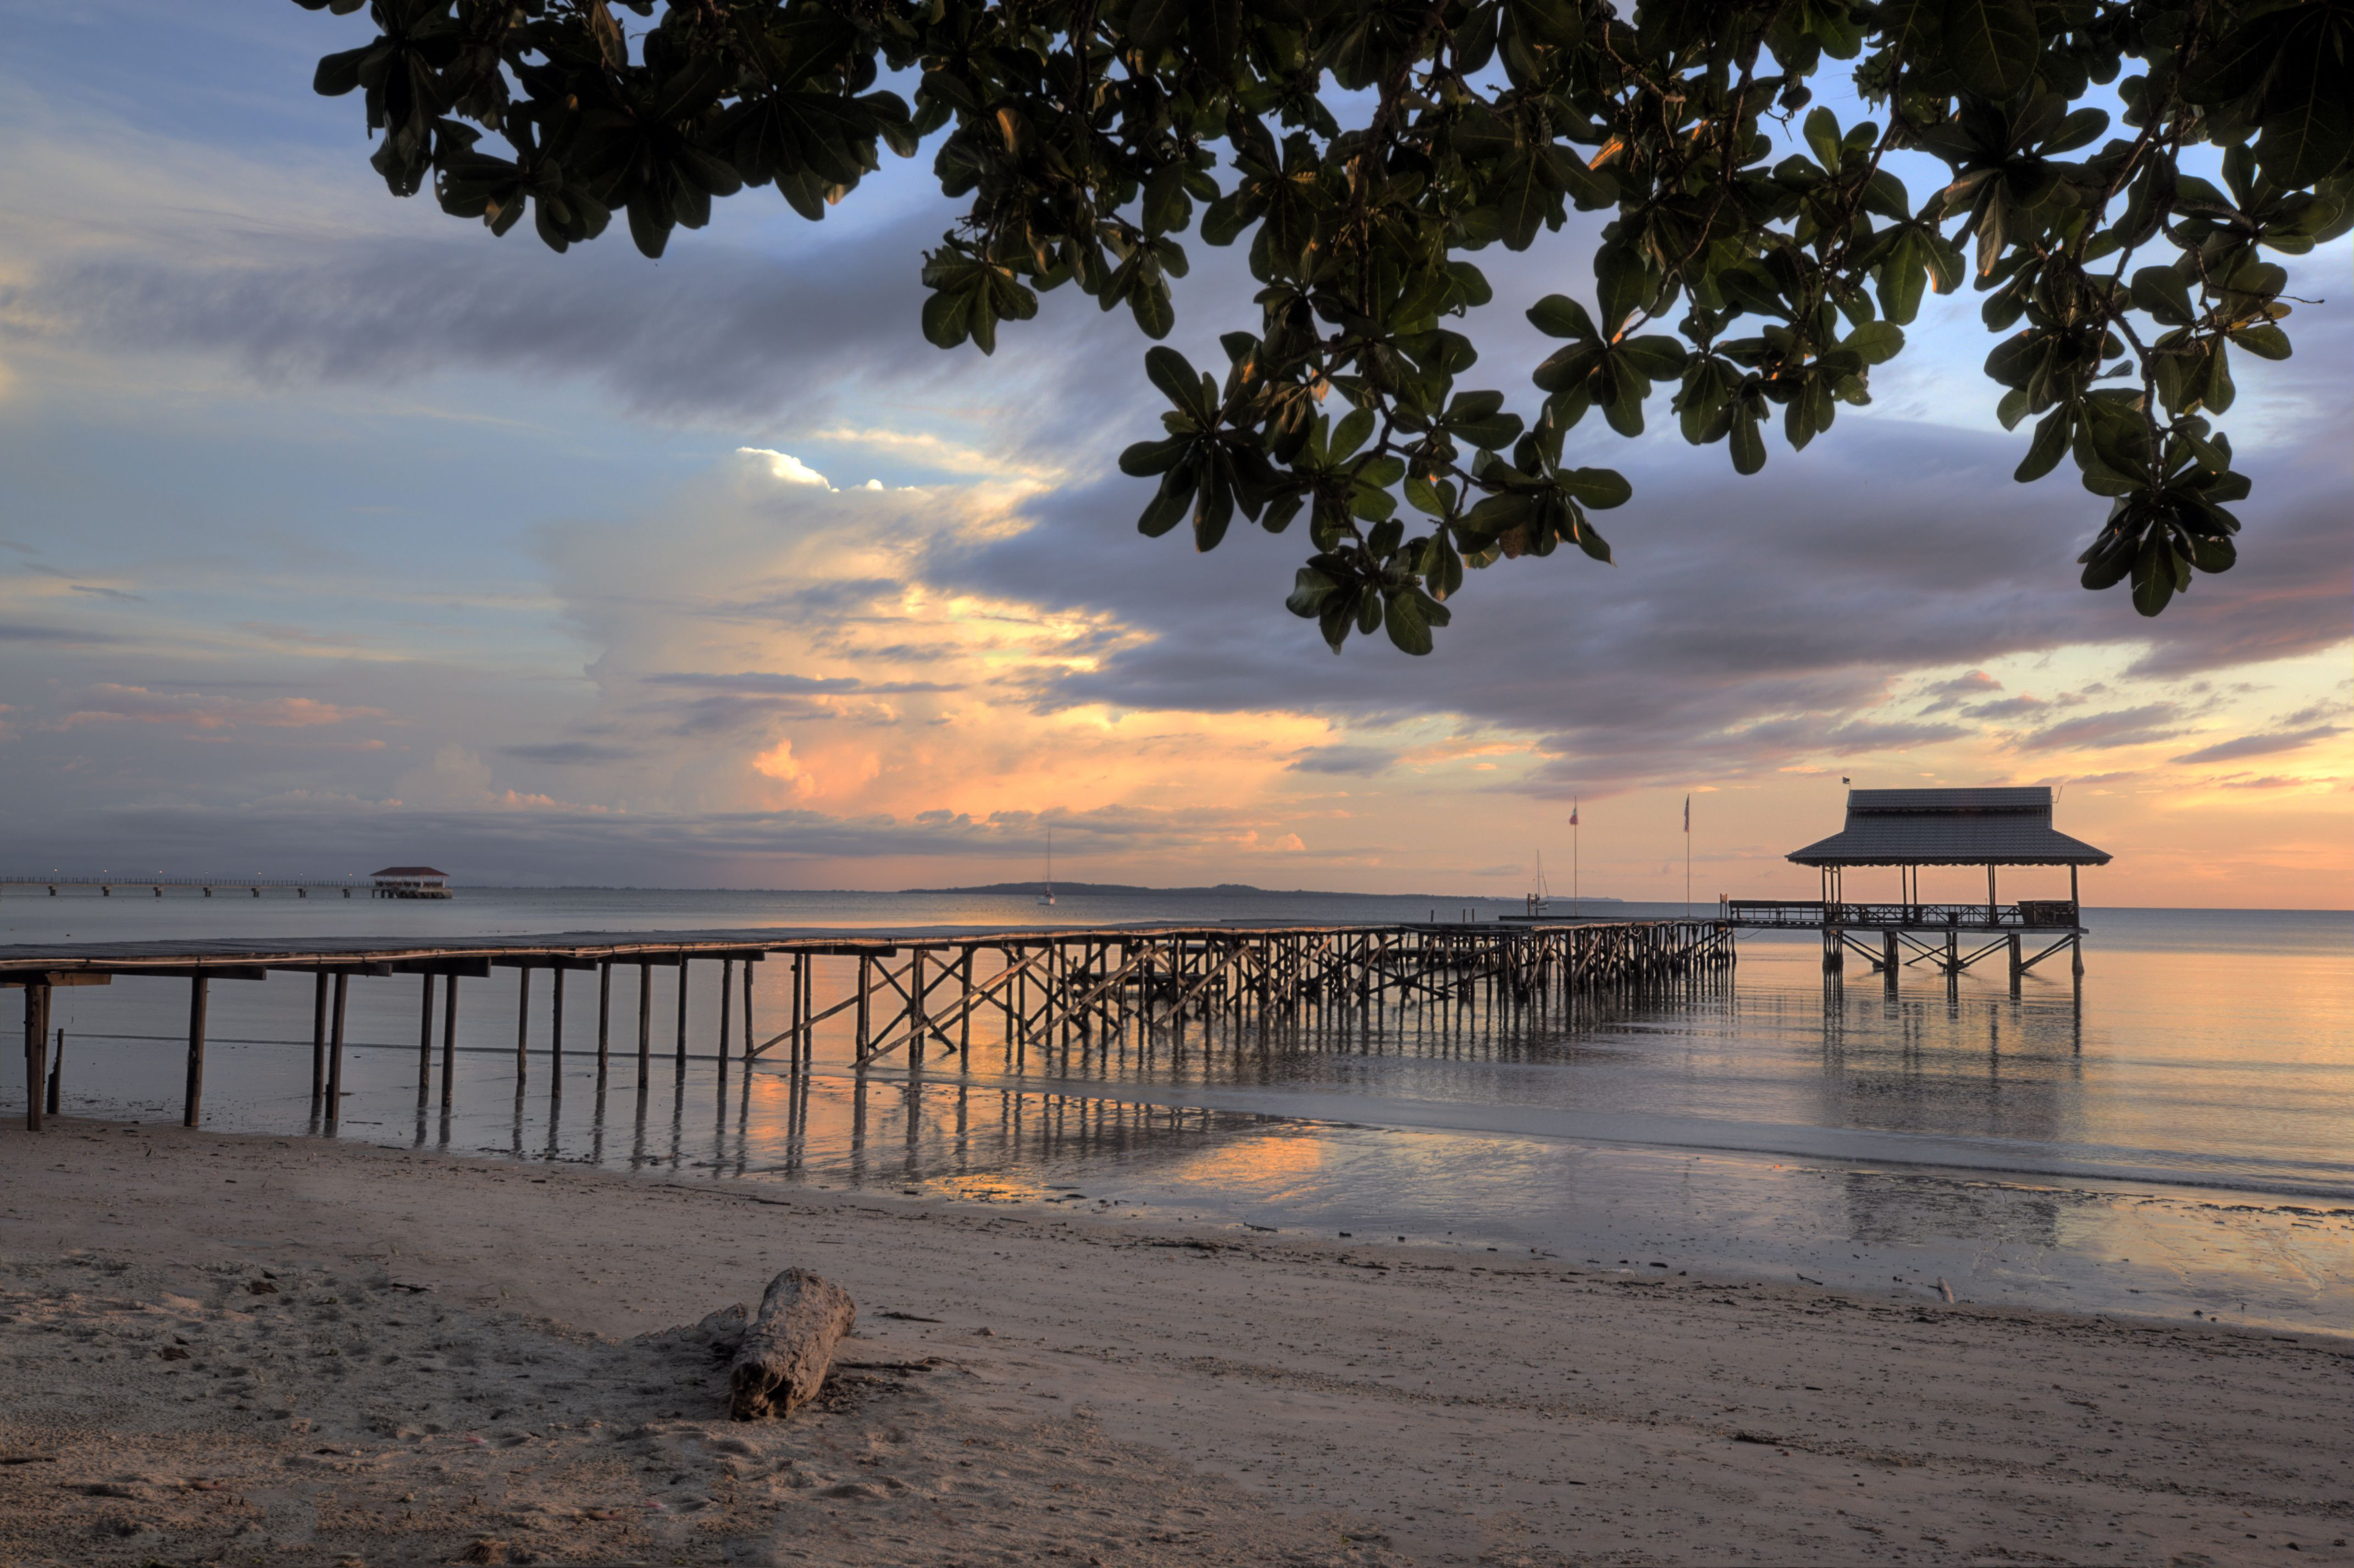 Sunset at pier in Borneo, Malaysia